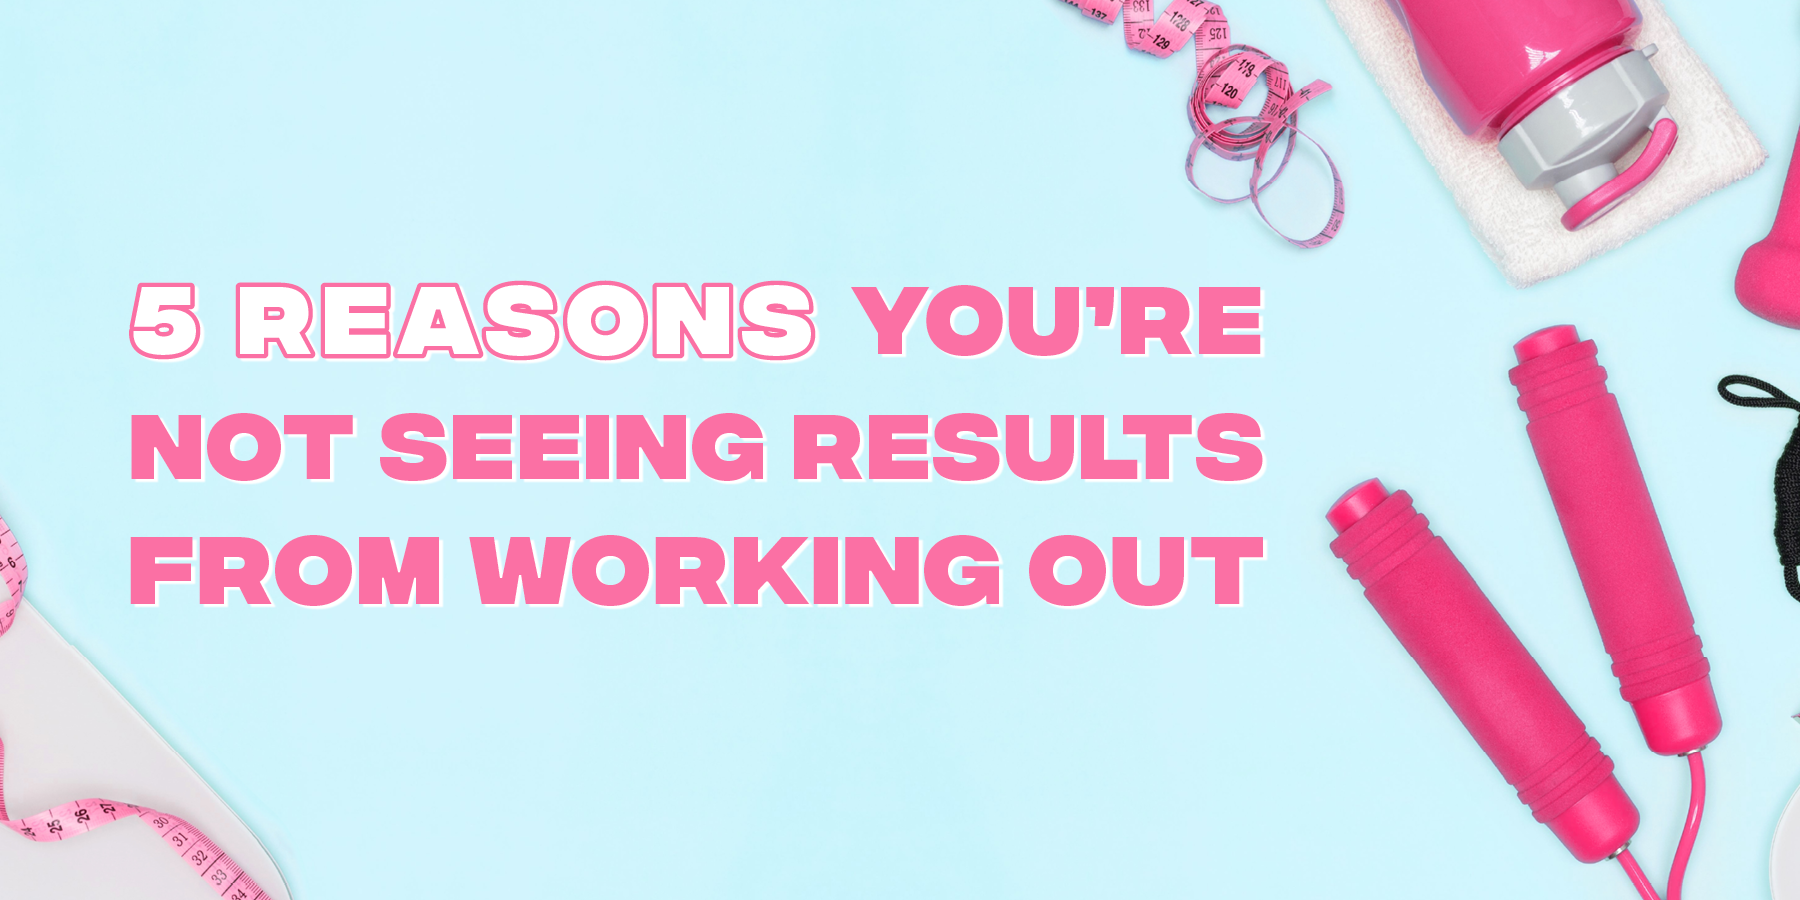 5 Reasons You're Not Seeing Results From Working Out